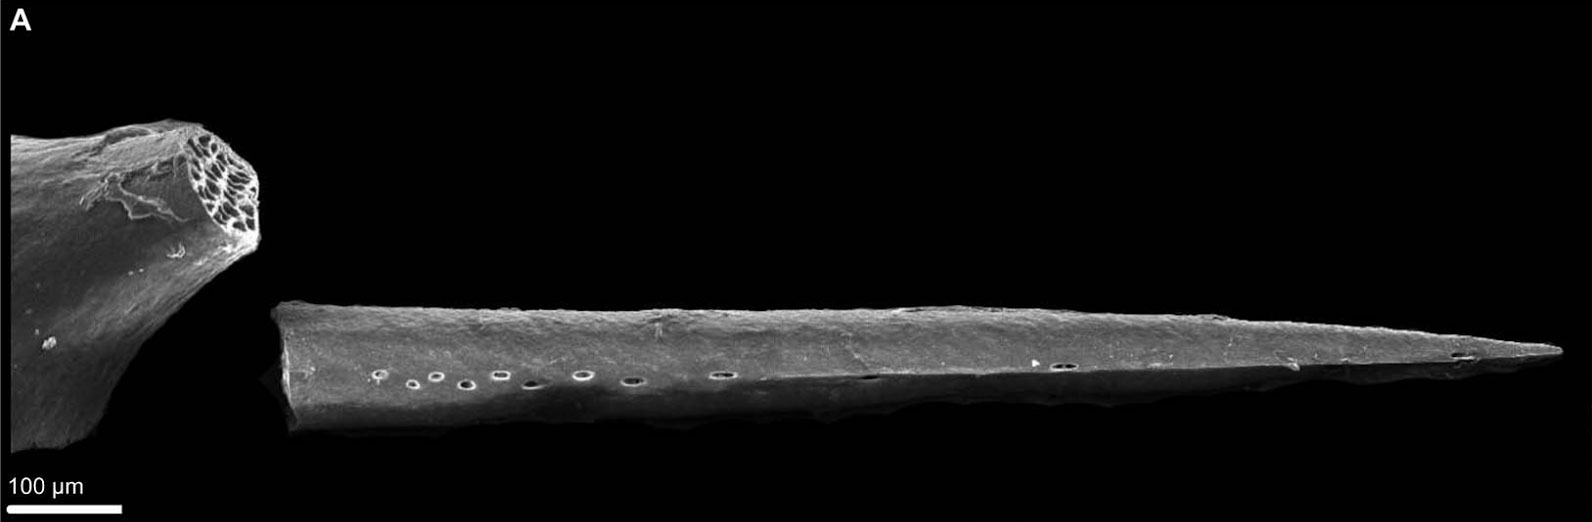 Scanning electron micrograph of the love dart of Everettia corrugata